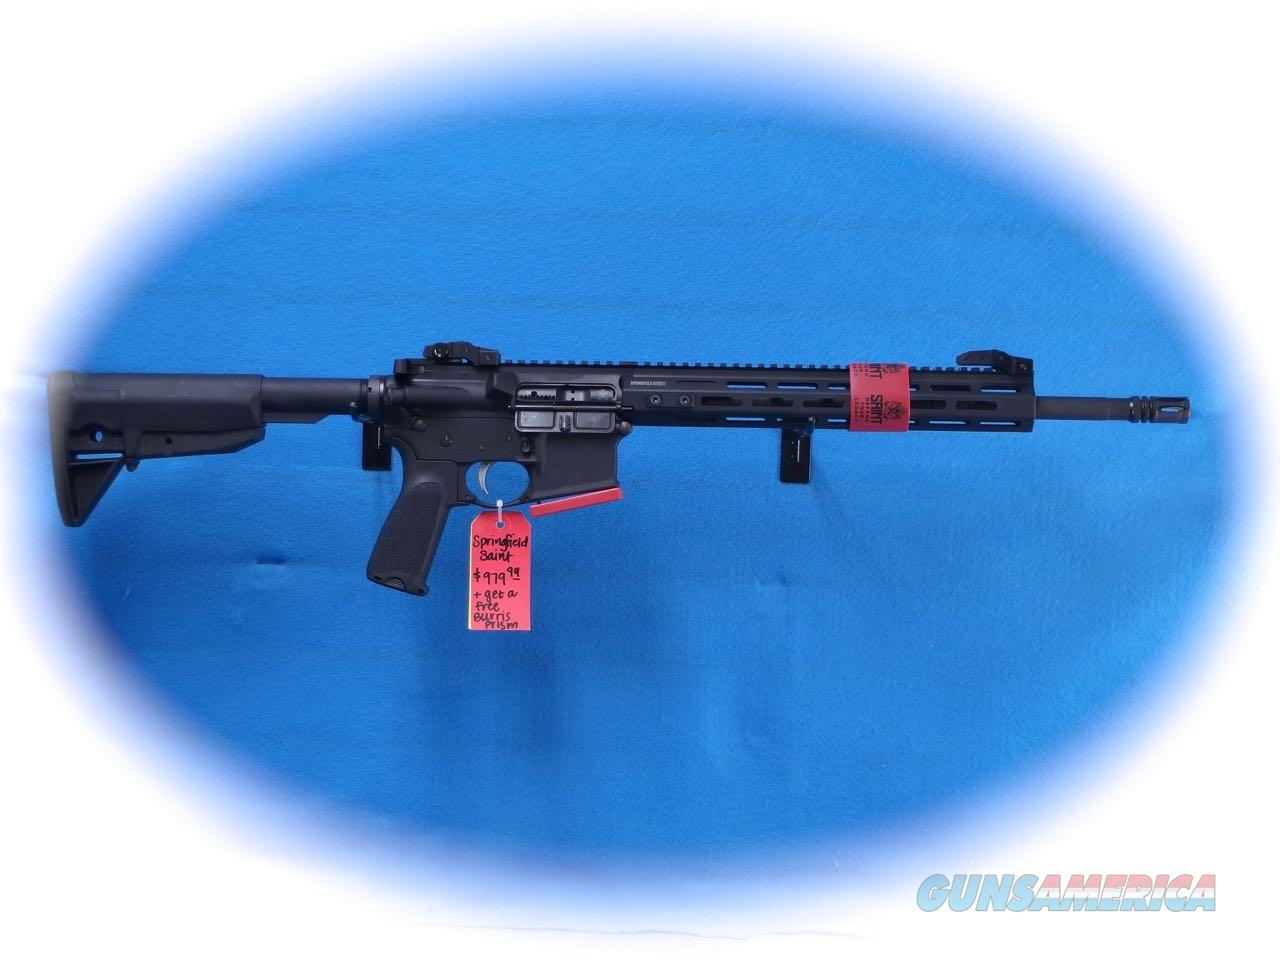 Springfield Armory Saint AR-15 Rifle 5.56mm Cal w/Burris Prism Sight **New**  Guns > Rifles > Springfield Armory Rifles > SAINT